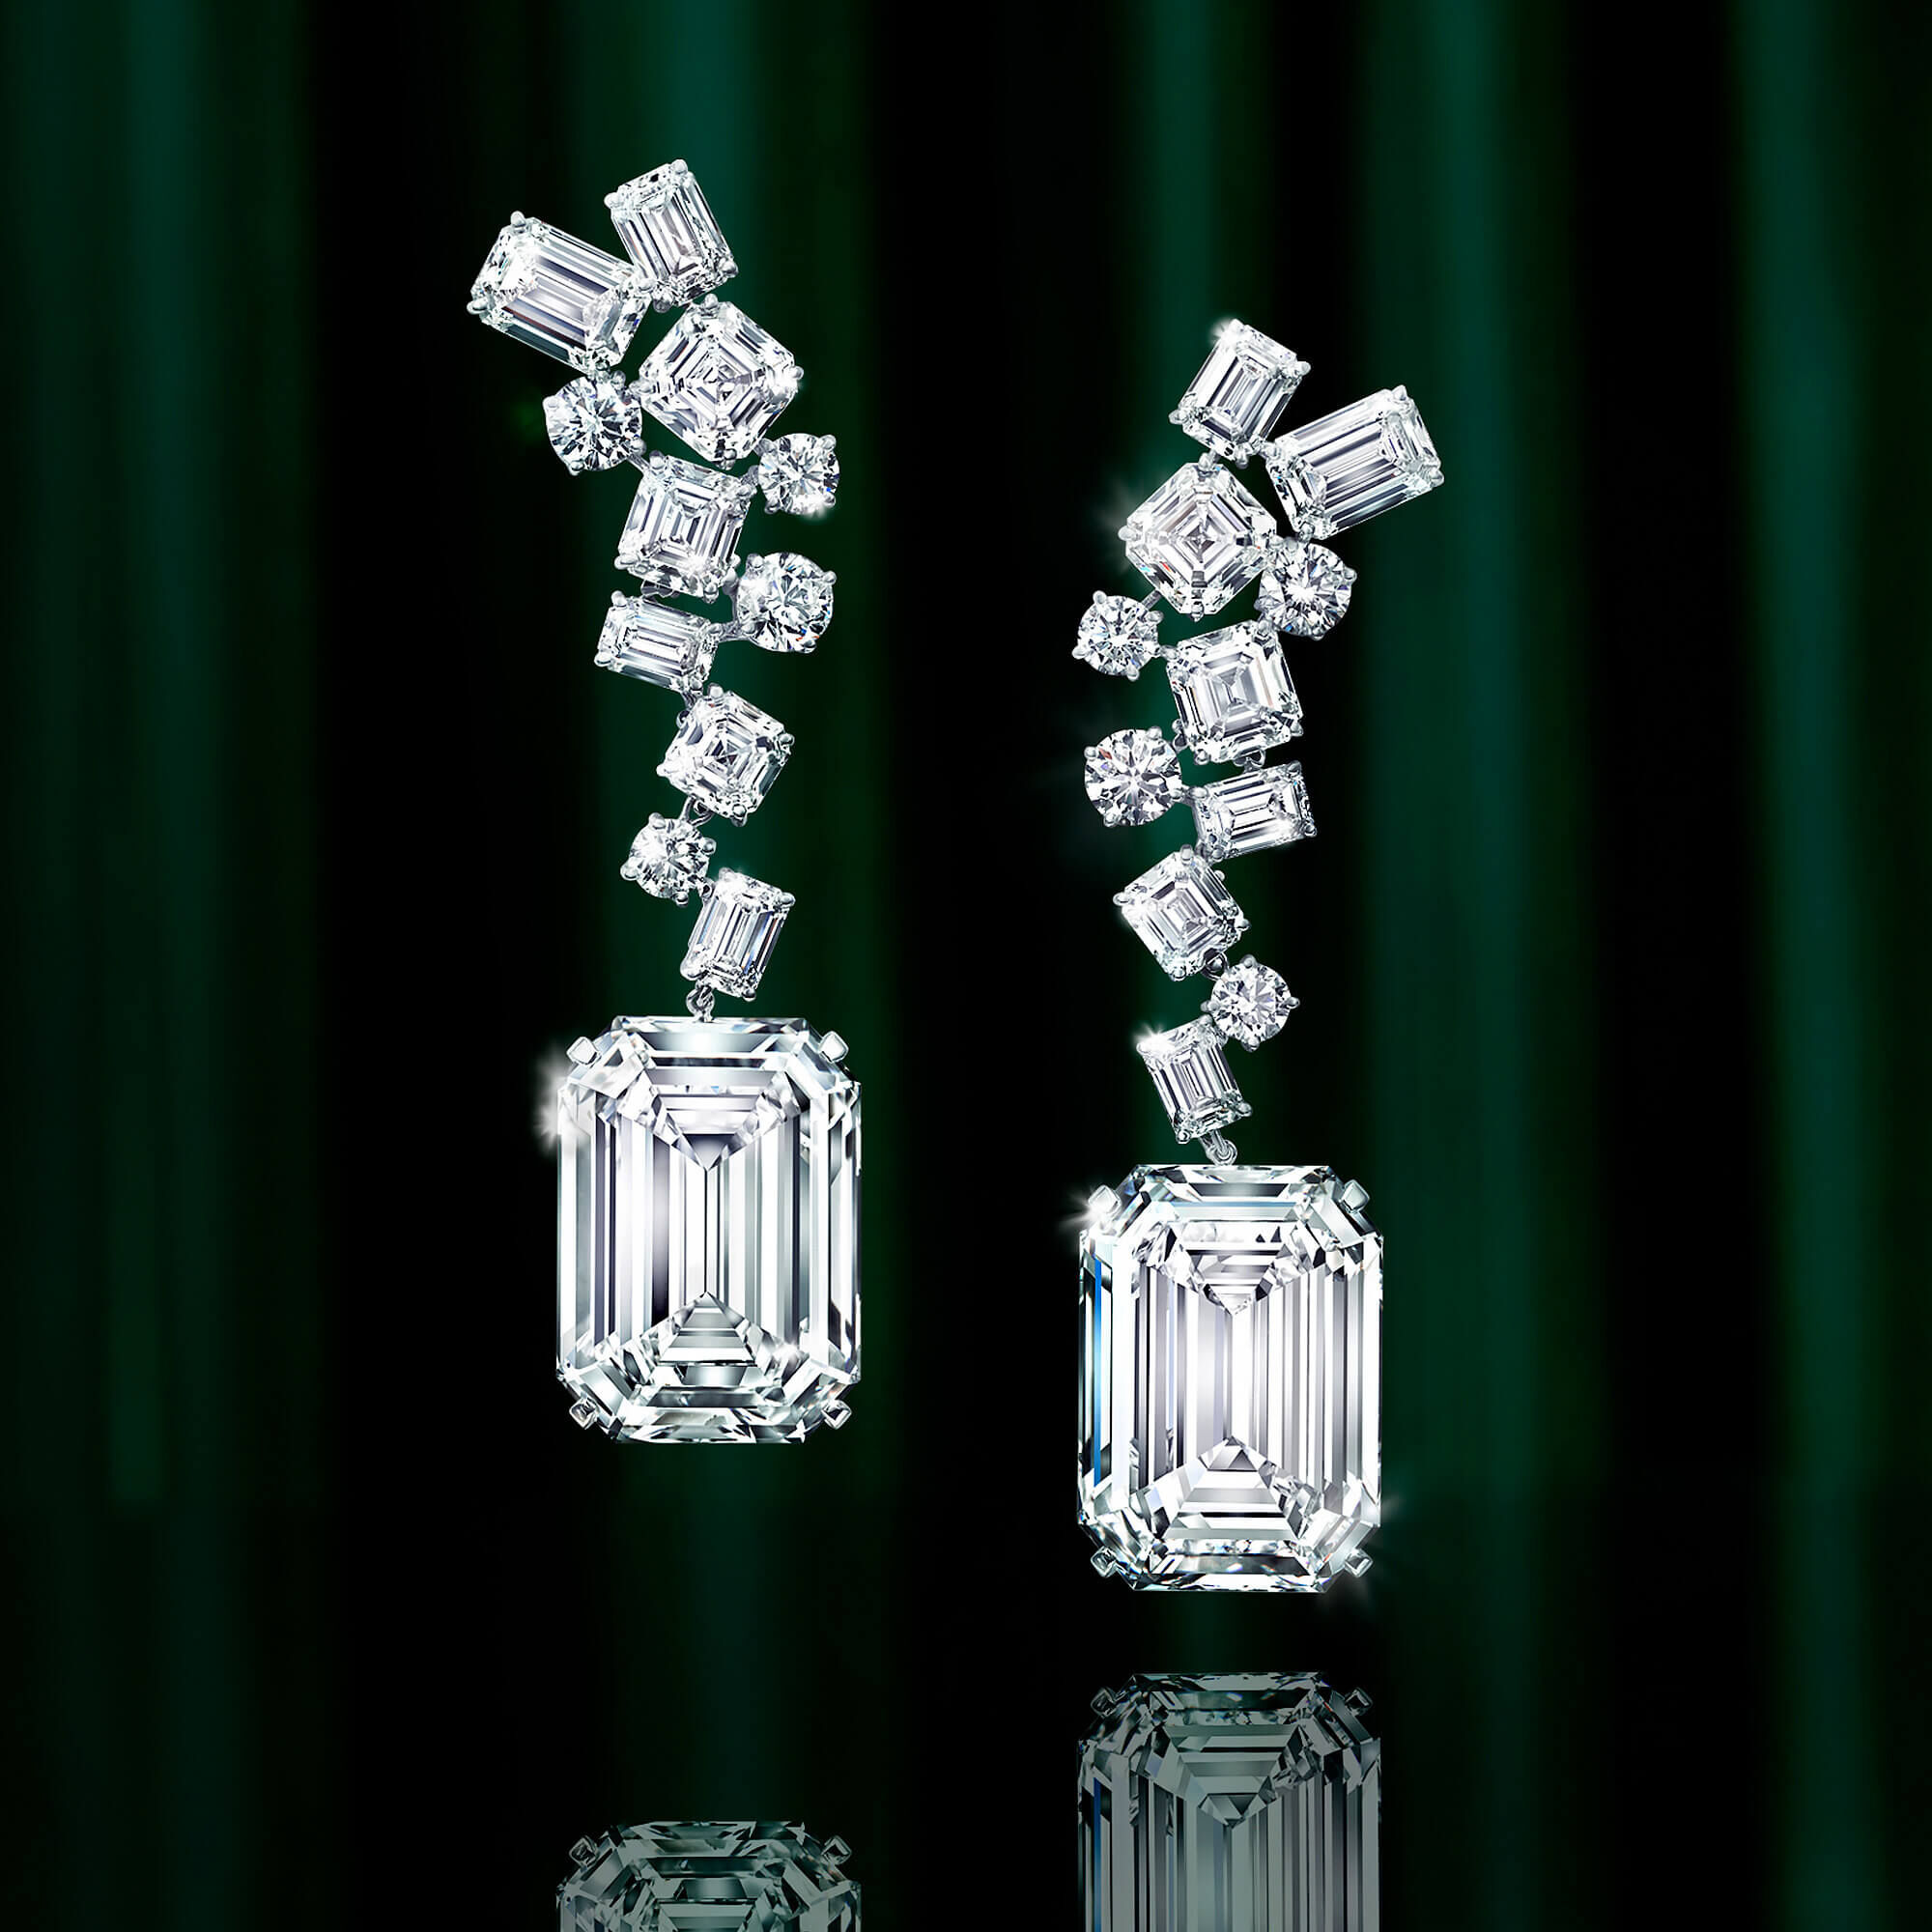 The Eternal Twins IDENTICAL D COLOUR FLAWLESS, 50.23CTS & 50.23CTS